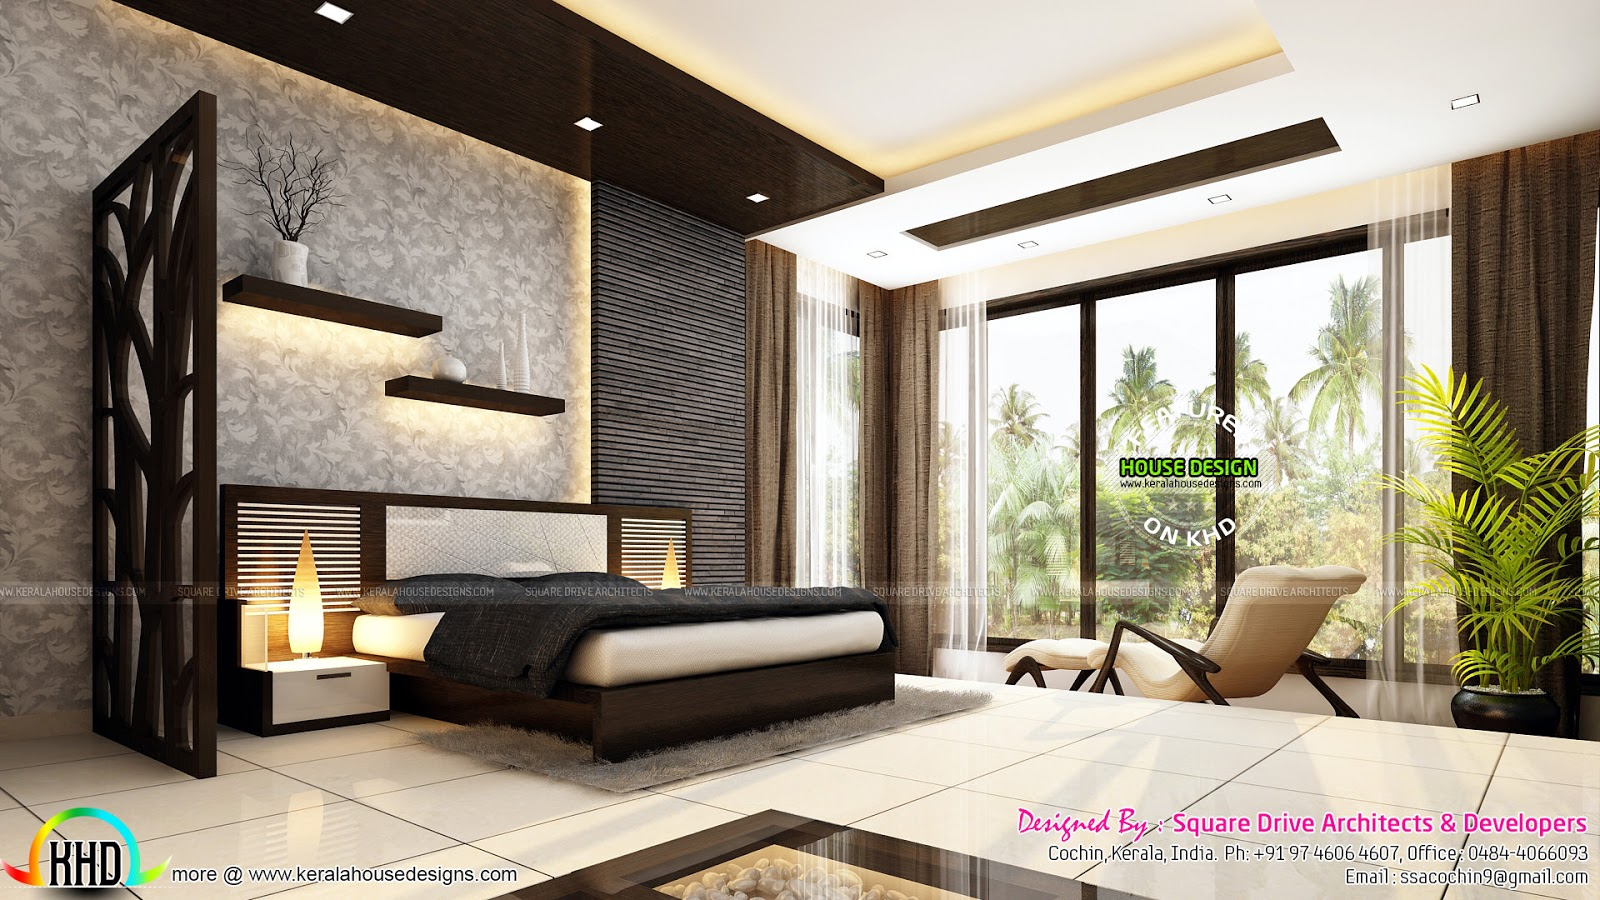 Very beautiful modern interior designs kerala home for Interior home design bedroom ideas